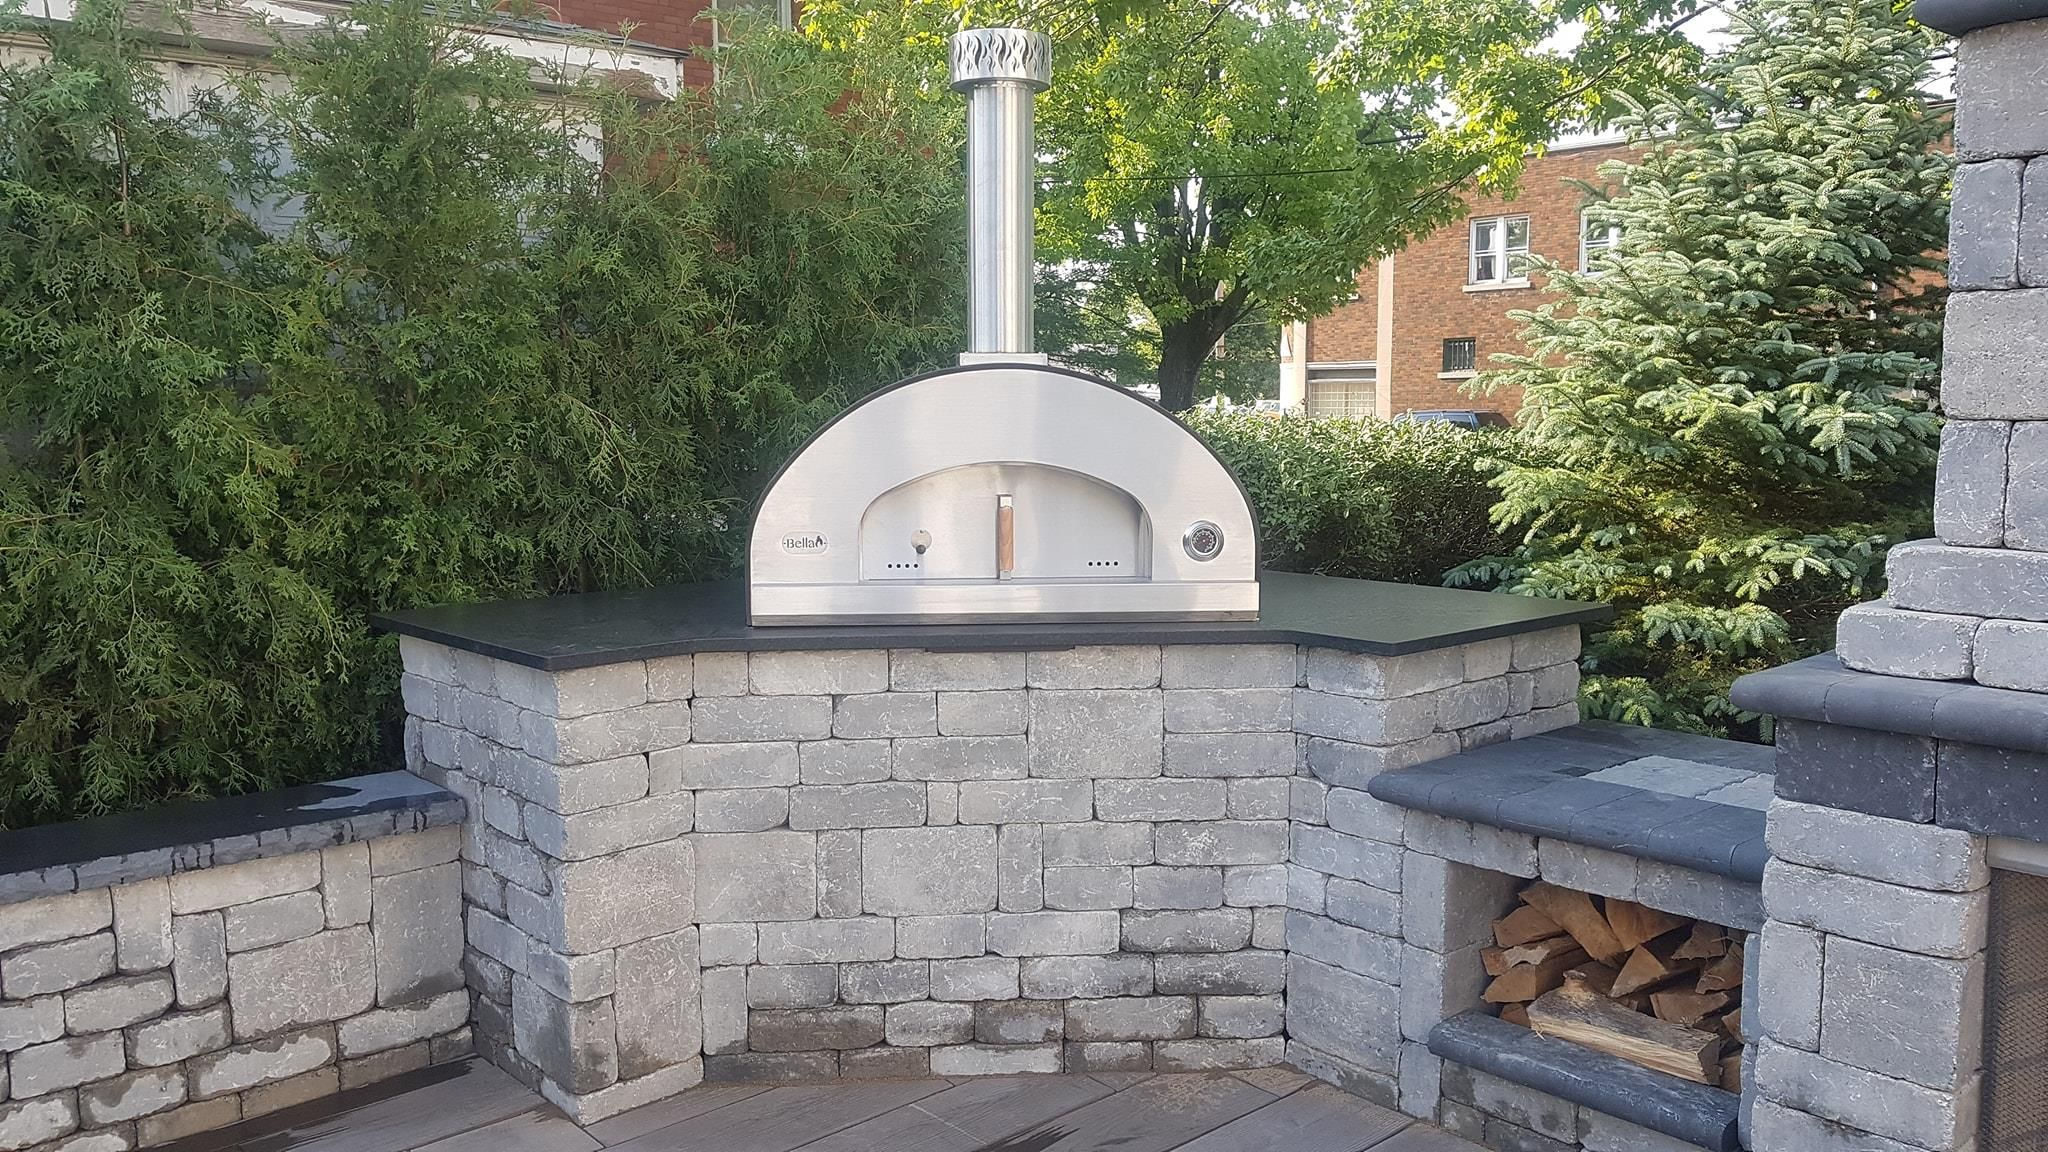 Portable Wood Fired Pizza Ovens Pizza Oven Wood Fired Pizza